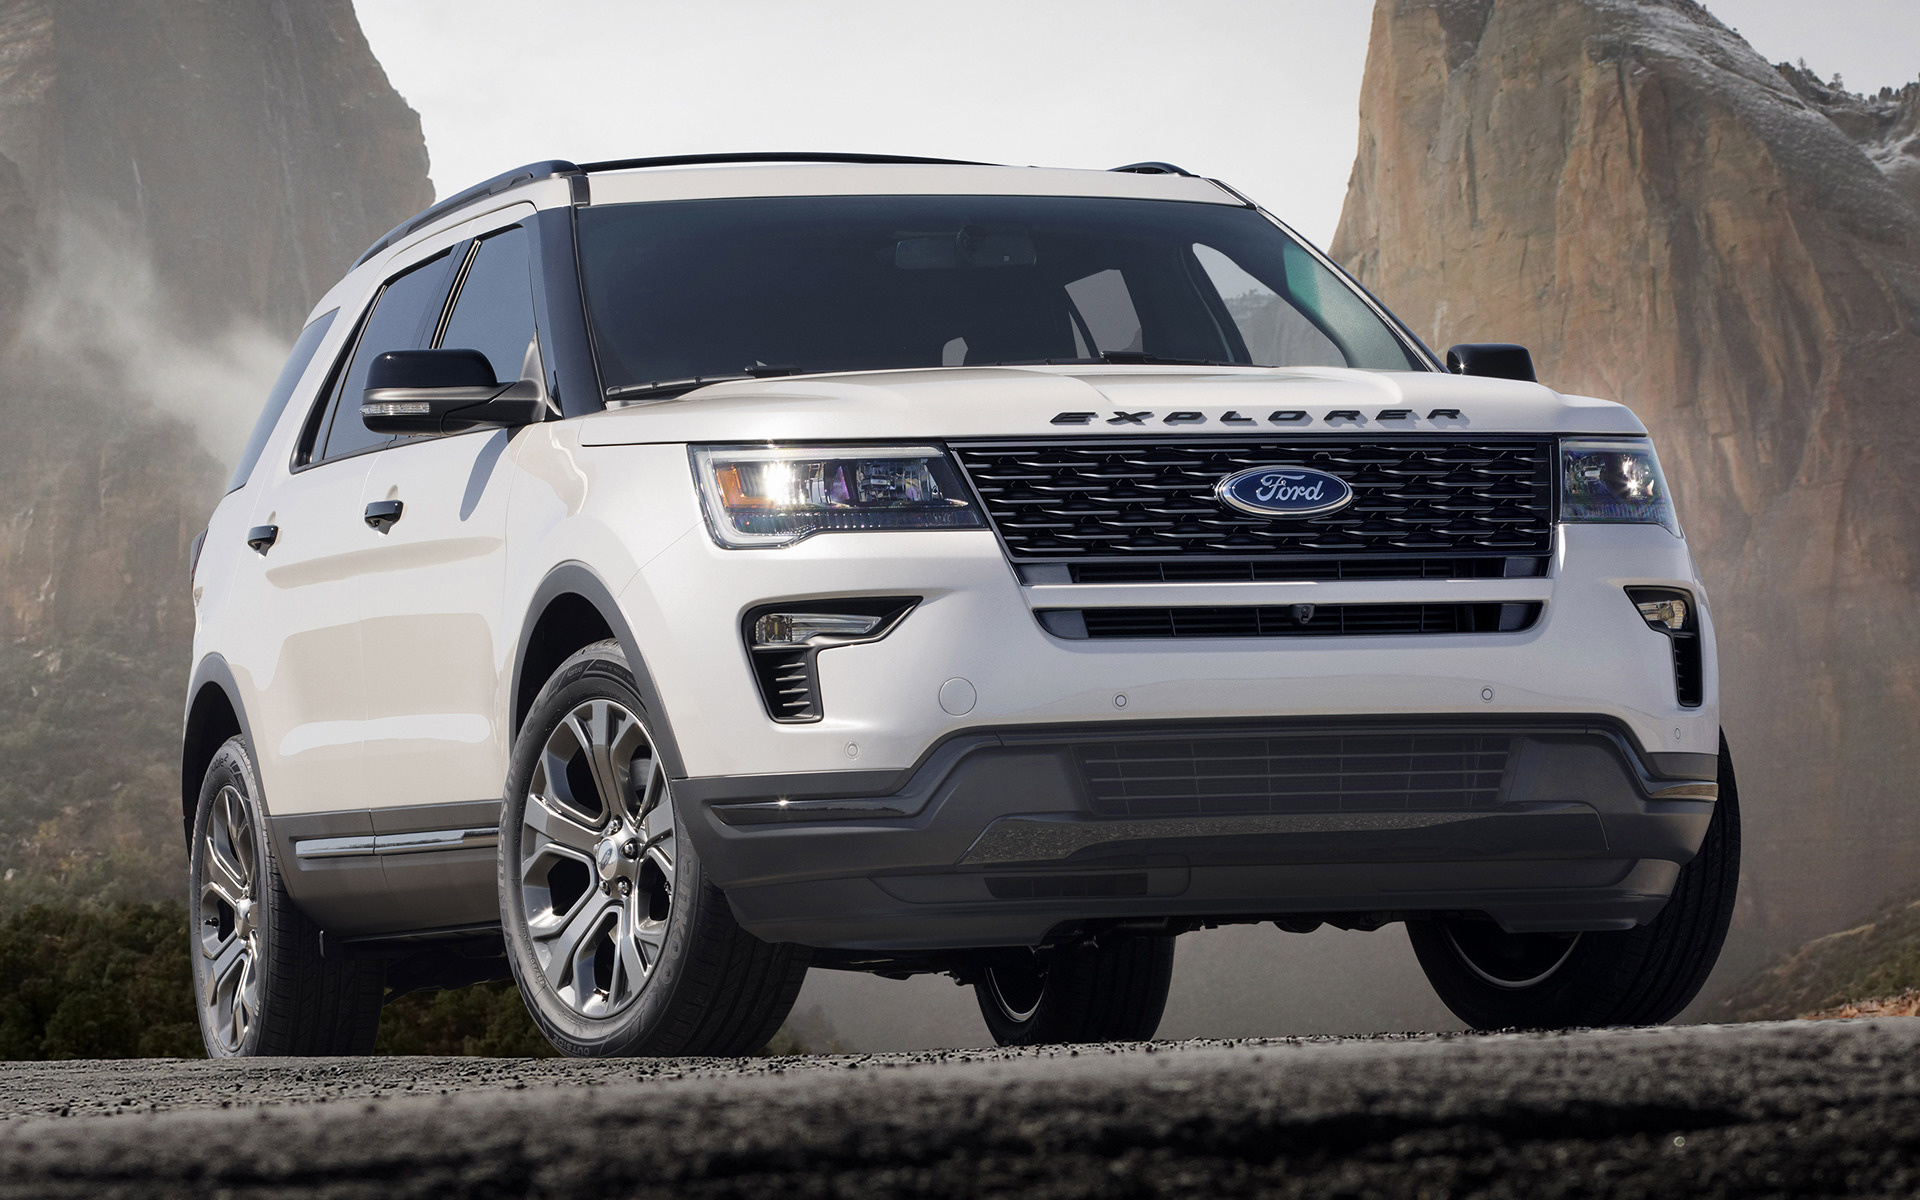 1920x1200 - Ford Explorer Wallpapers 3